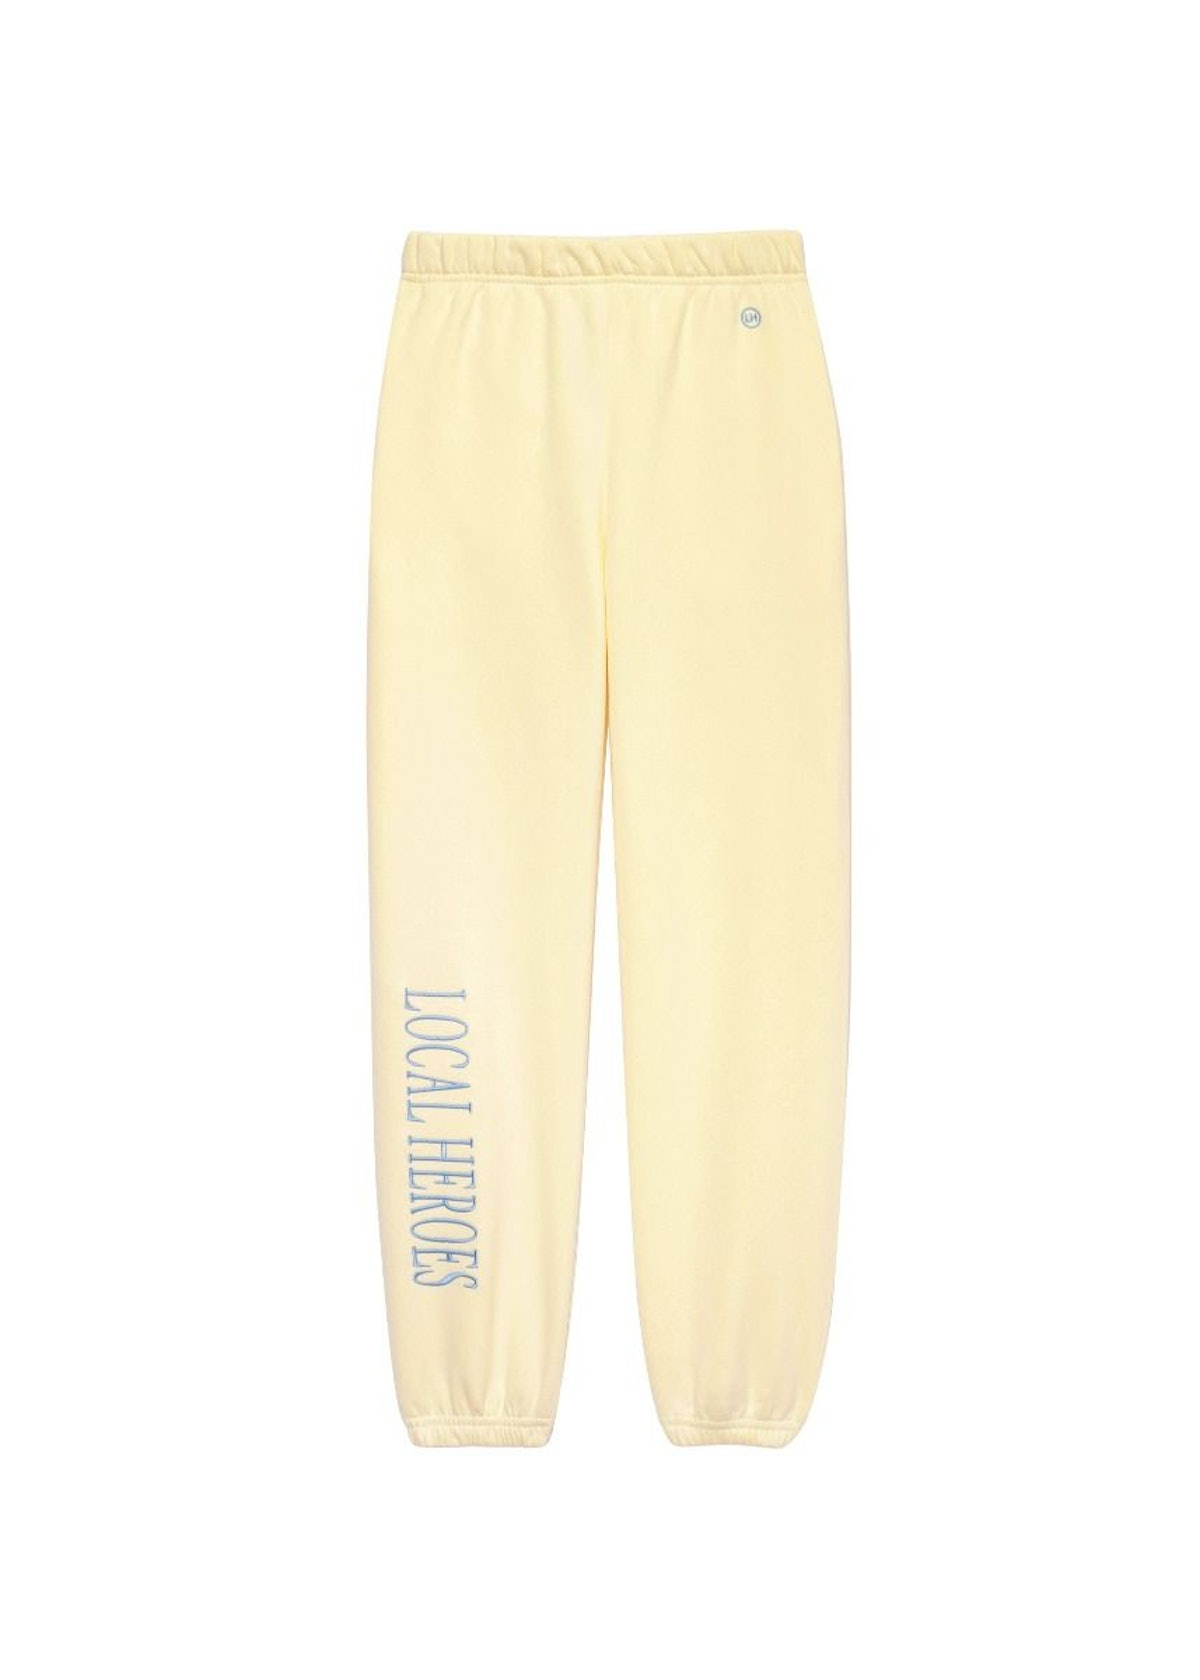 LH 2013 Cream Sweatpants from Local Heroes.